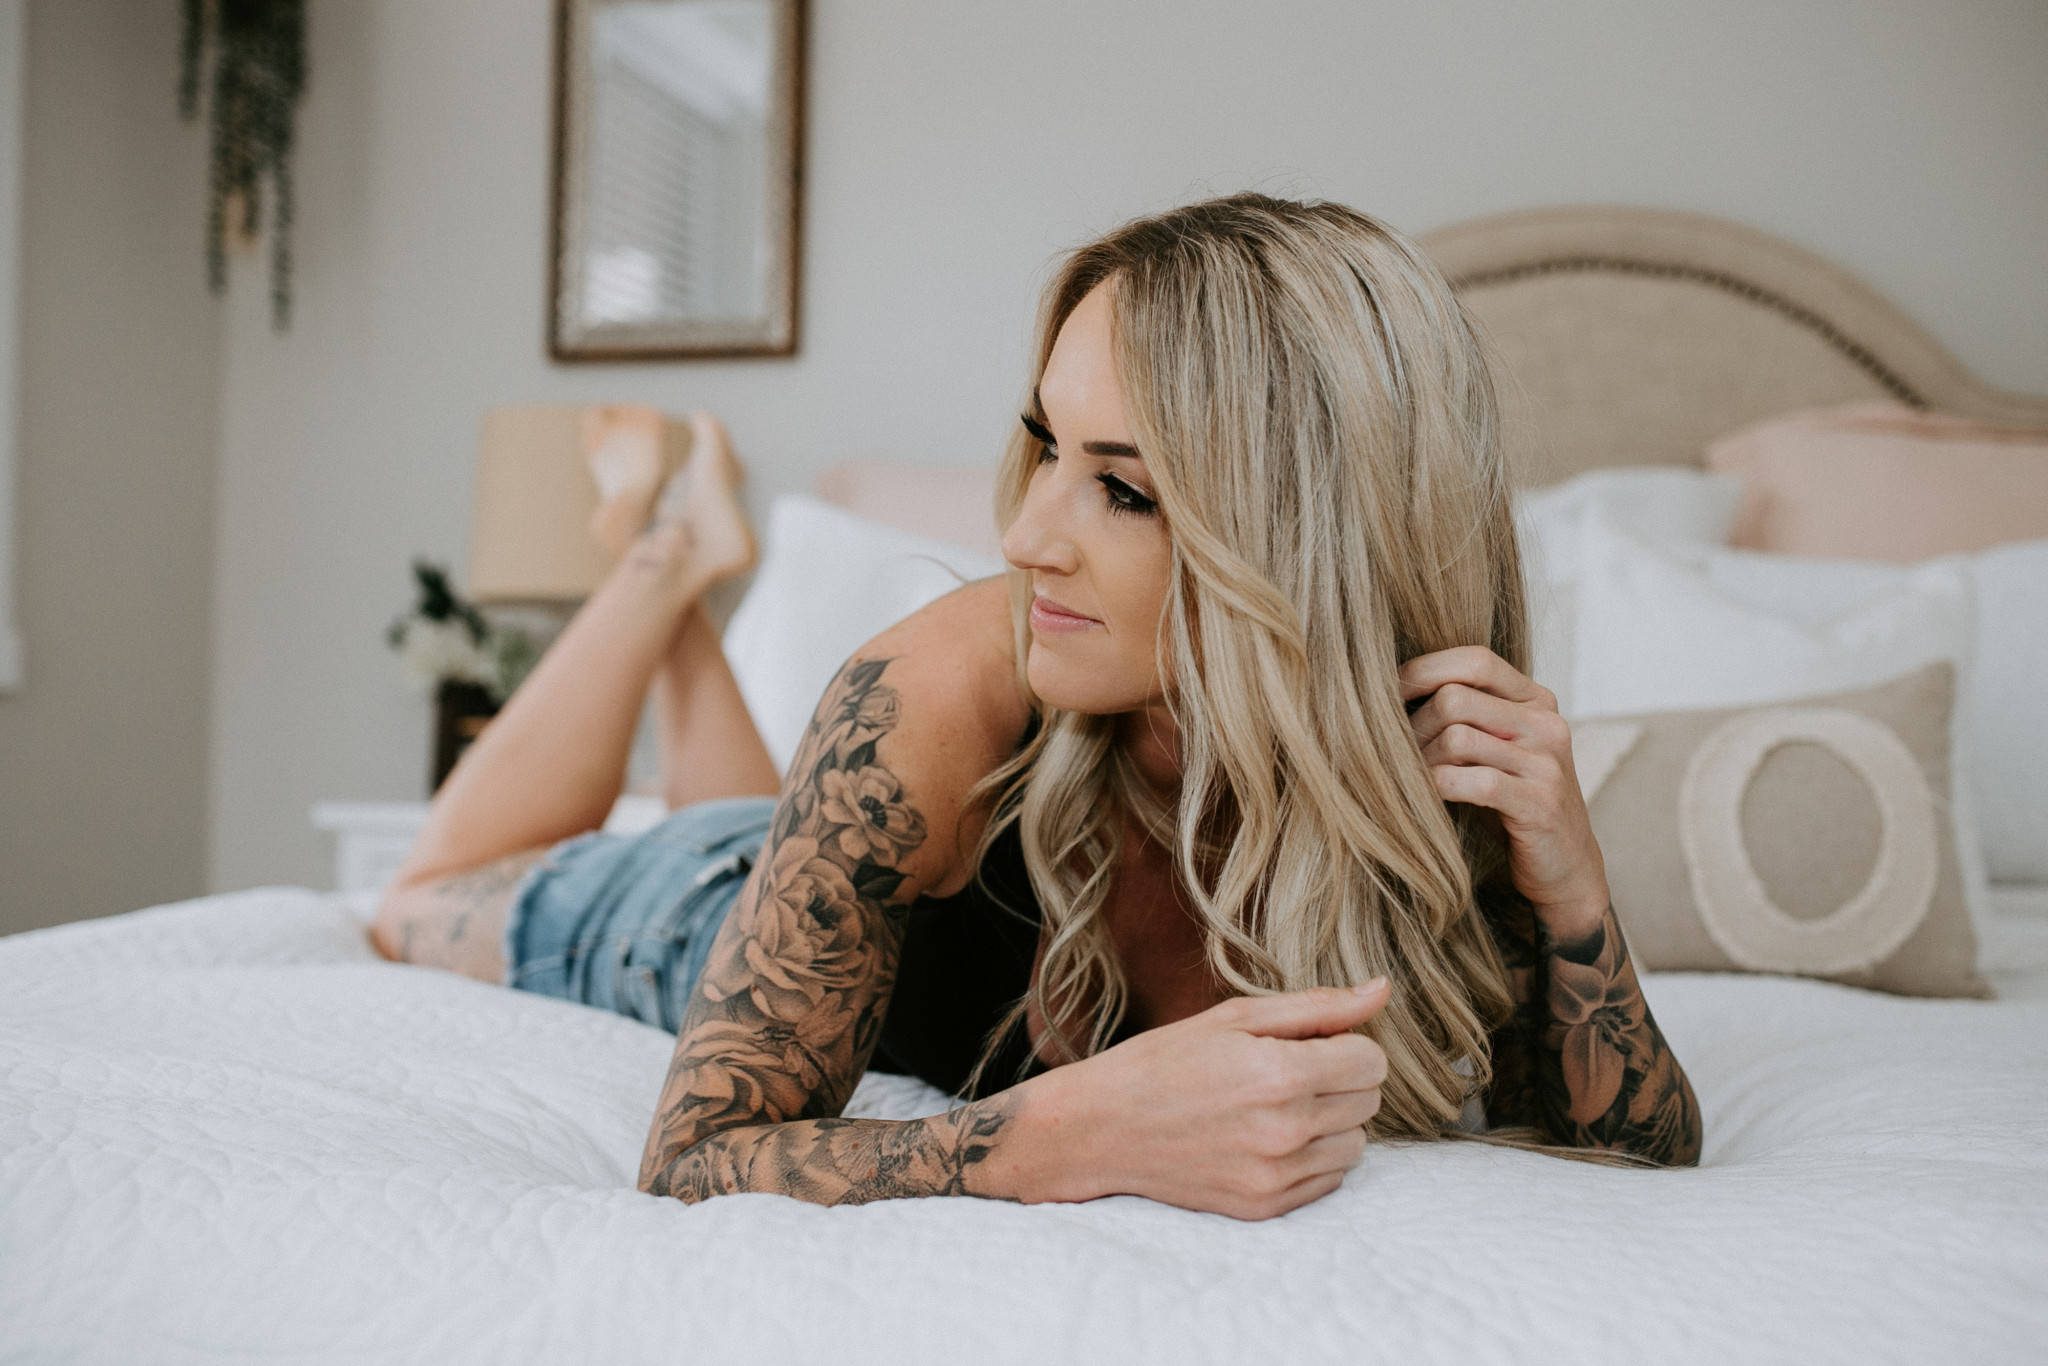 Lindsay Holt, 36, has entered the Inked Magazine cover girl contest. The Langley mother of two says the prize money would provide financial security for her family. (Stacey Firth/Special to Langley Advance Times)